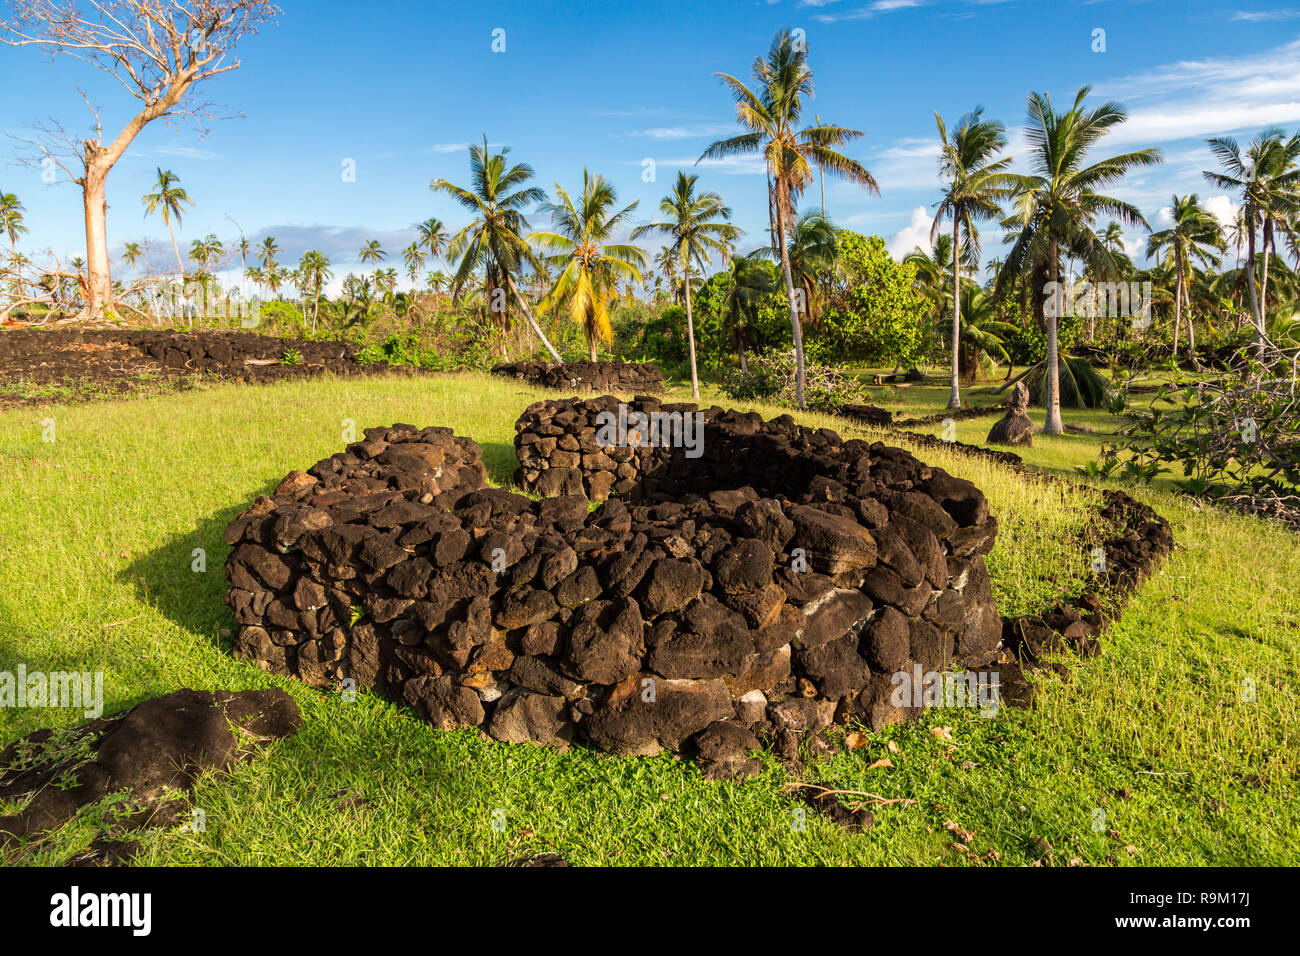 Talietumu (Kolo Nui), archaeological site in Uvea (Wallis) island, Wallis and Futuna, Oceania. A fortified Tongan settlement (Tongan fort). - Stock Image